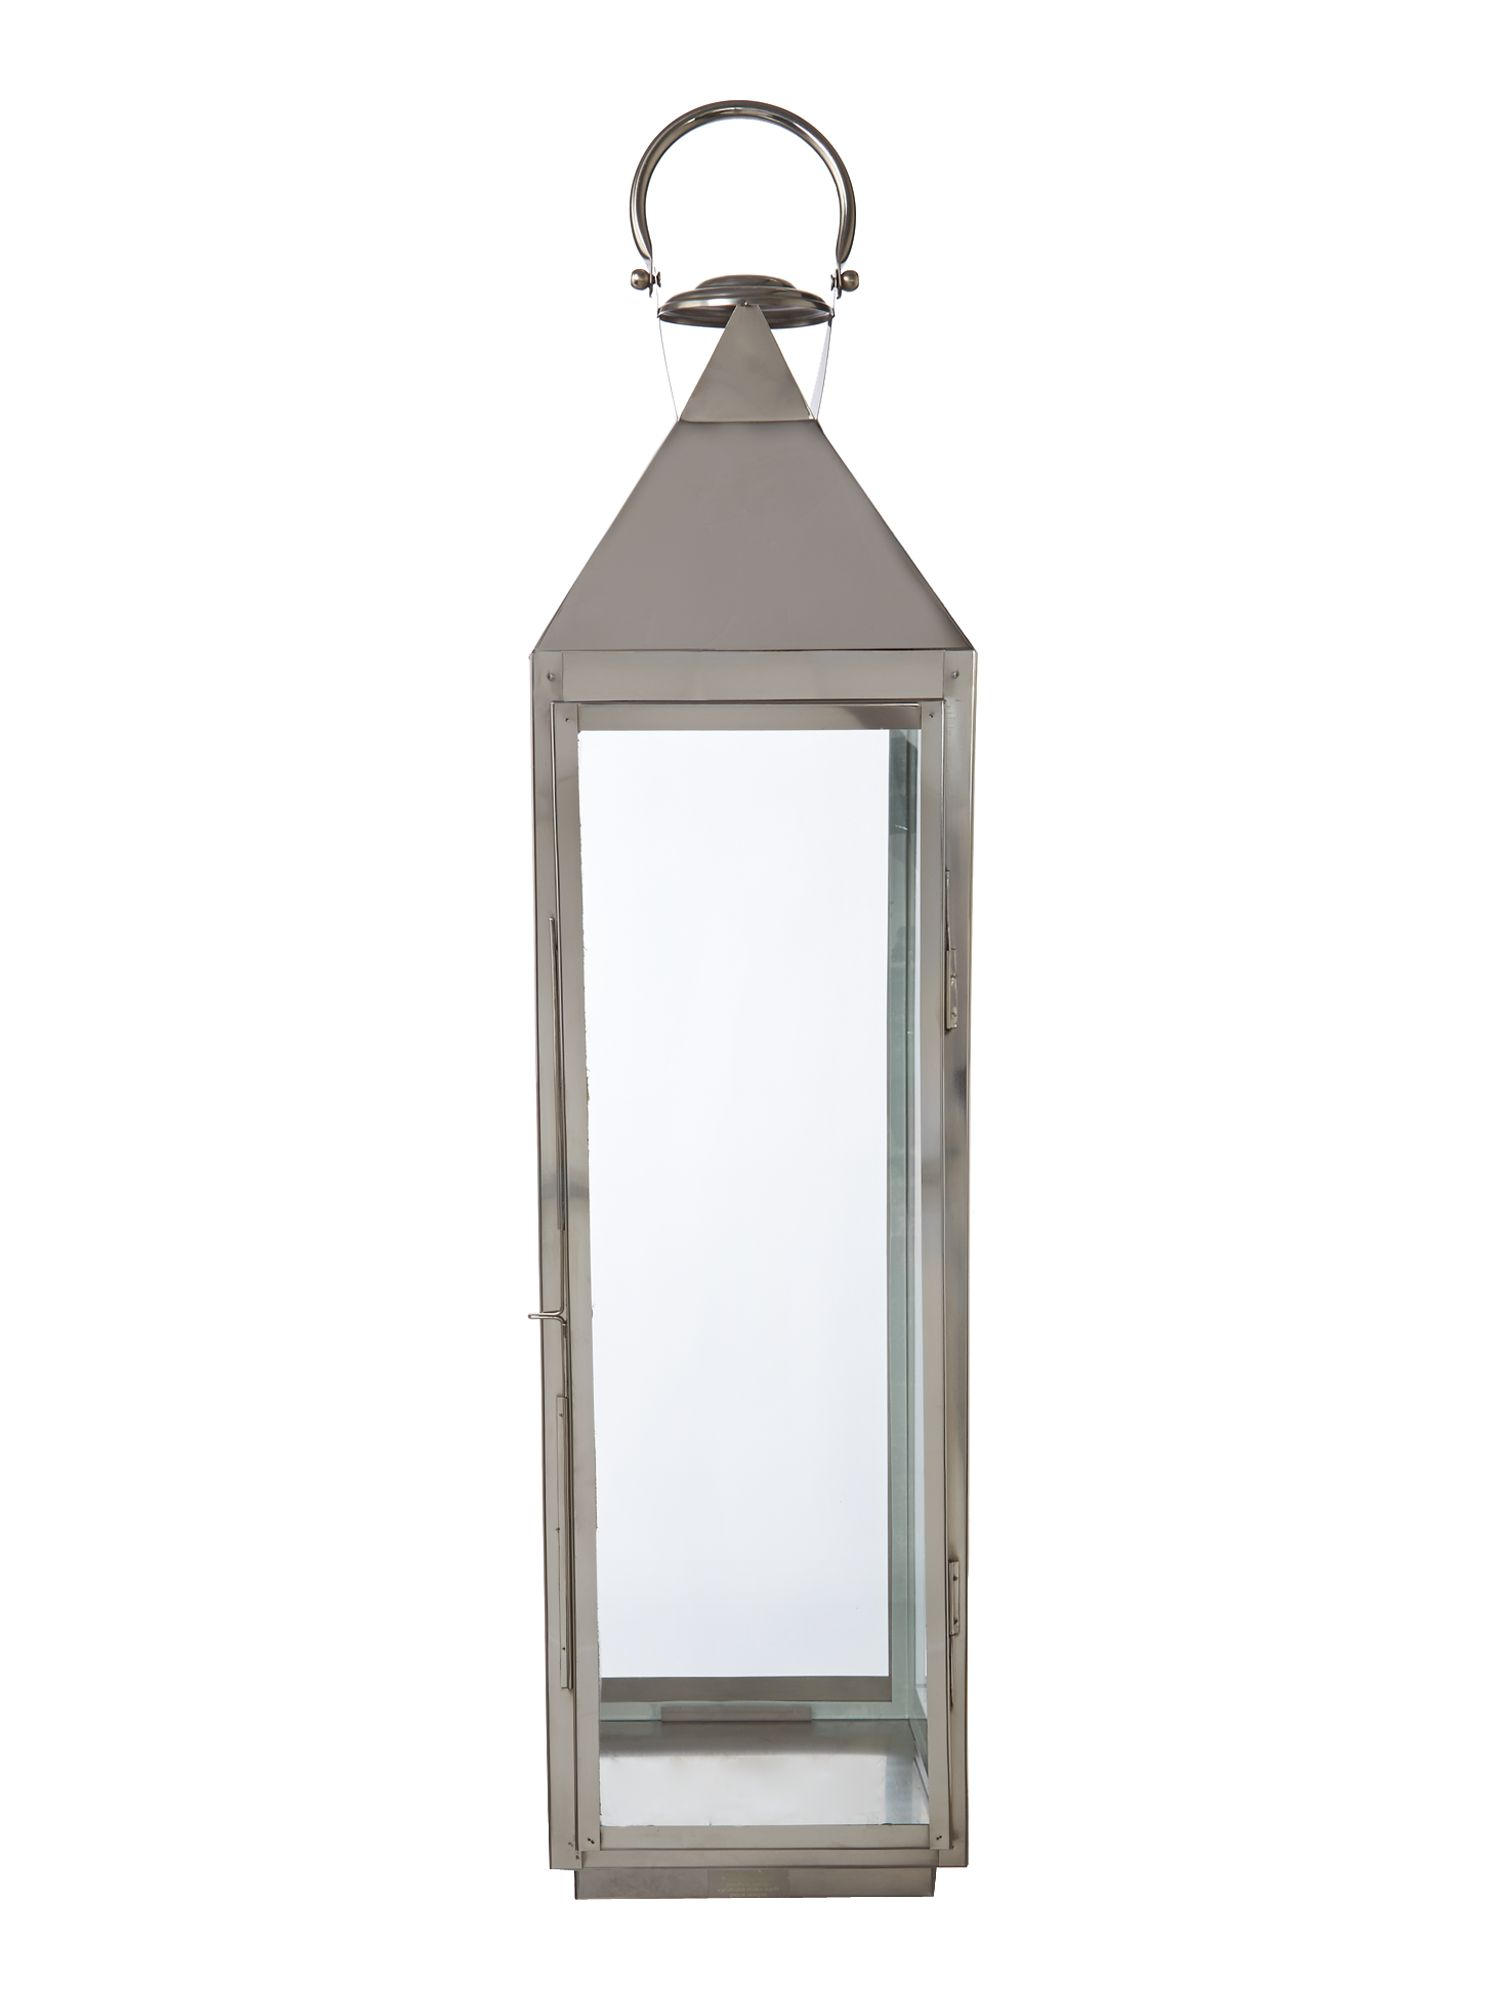 Hurricane lamp, large